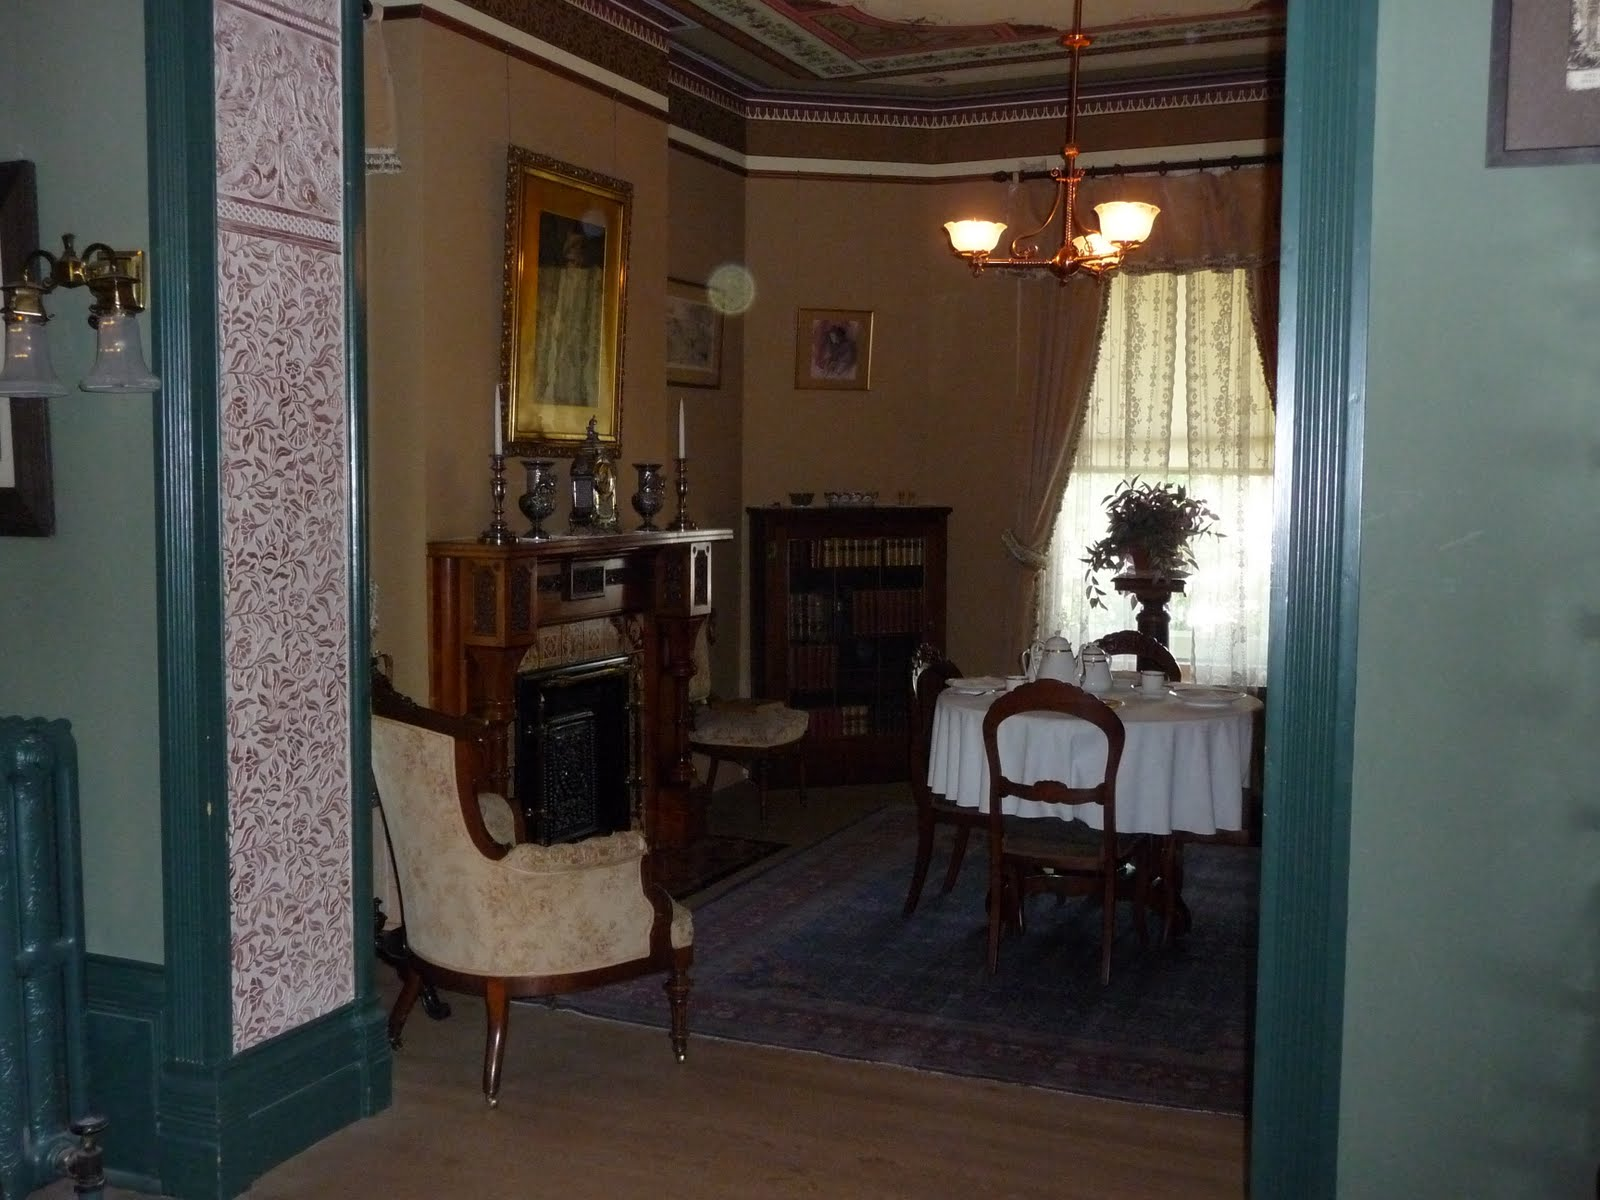 The Byers Family, And The Evans Family To Whom They Sold The Home In 1889,  Were Prominent Members Of Denver Society And The Interior Reflects Their  Wealth ...